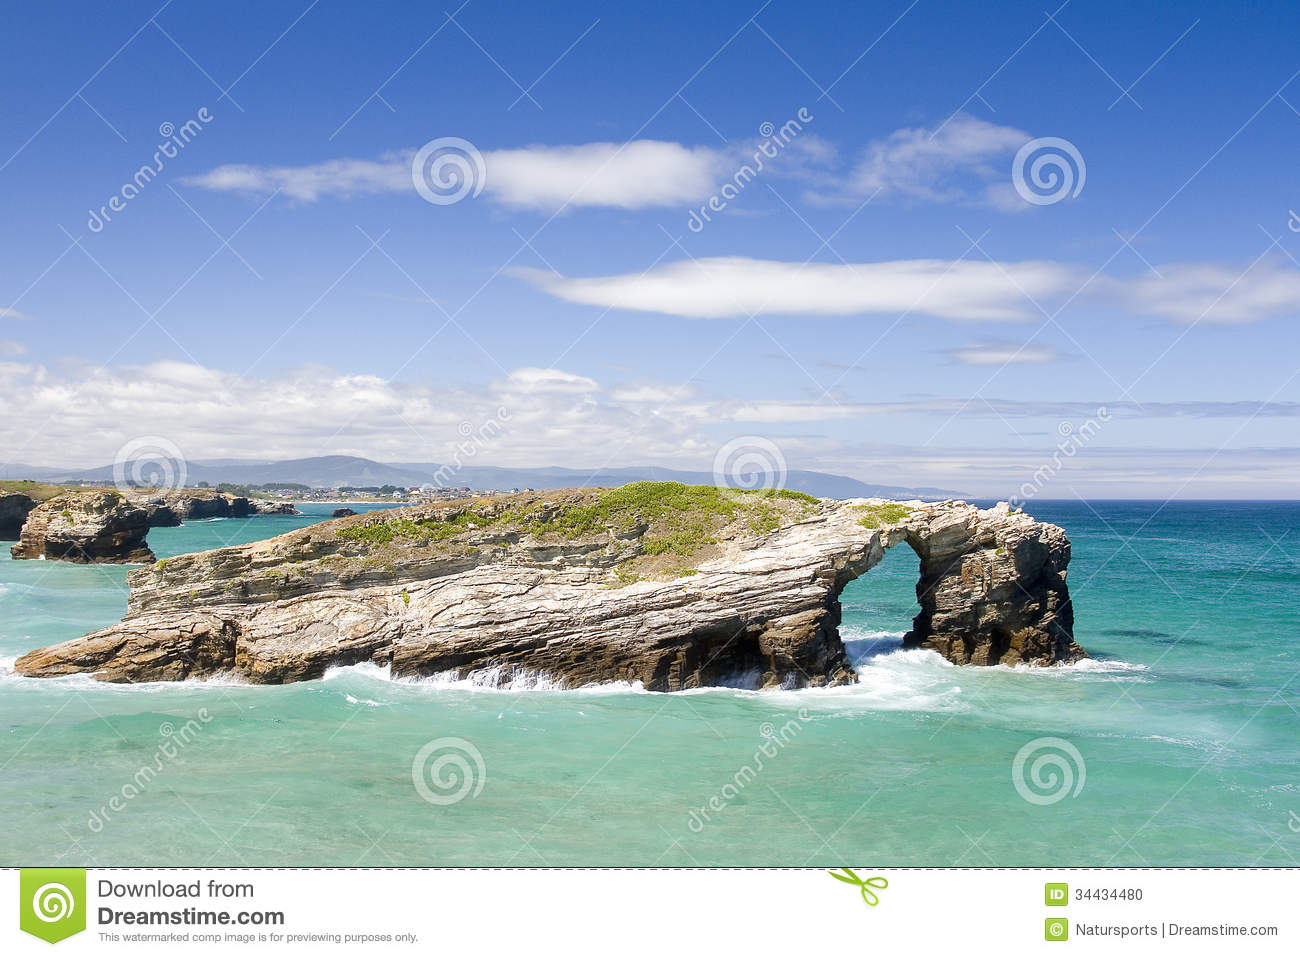 As Catedrais Beach, Spain Stock Photo - Image: 34434480